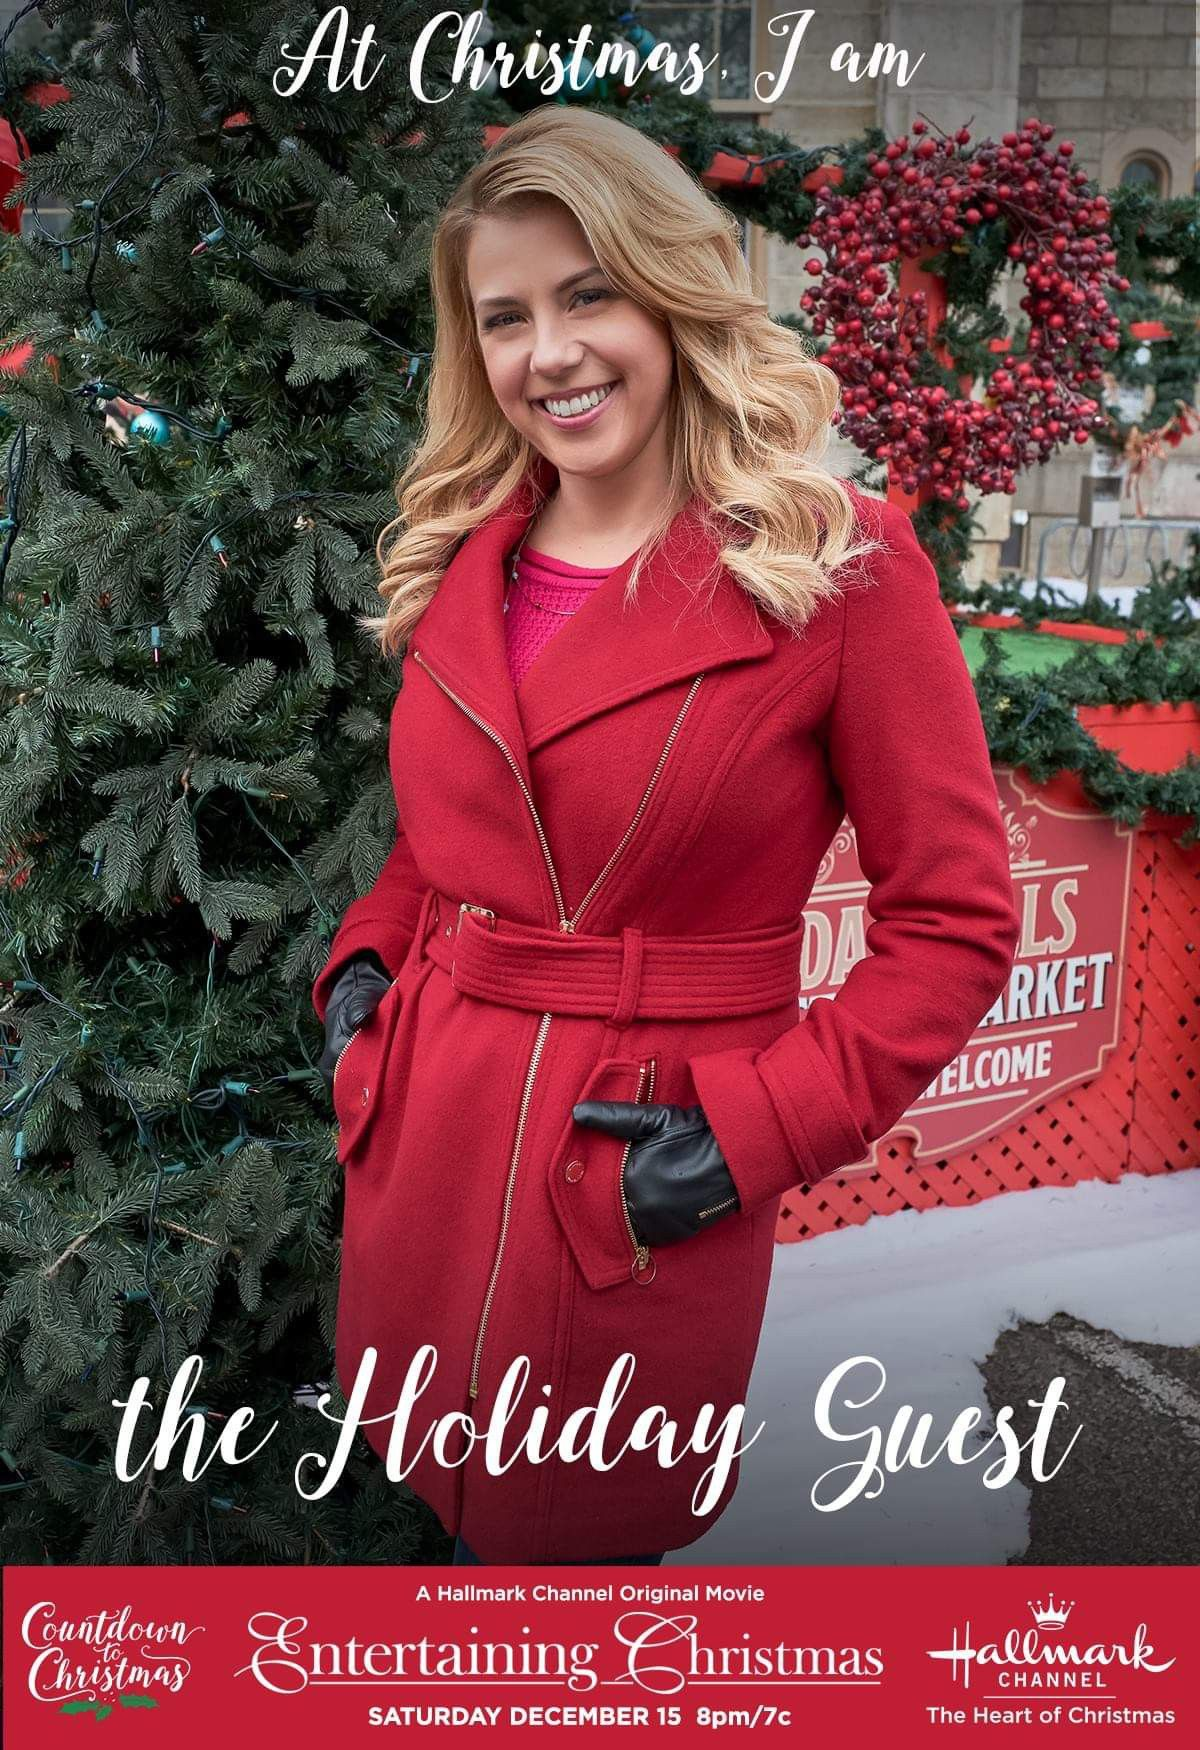 Hallmark channel christmas movies image by Lorie Ortiz on